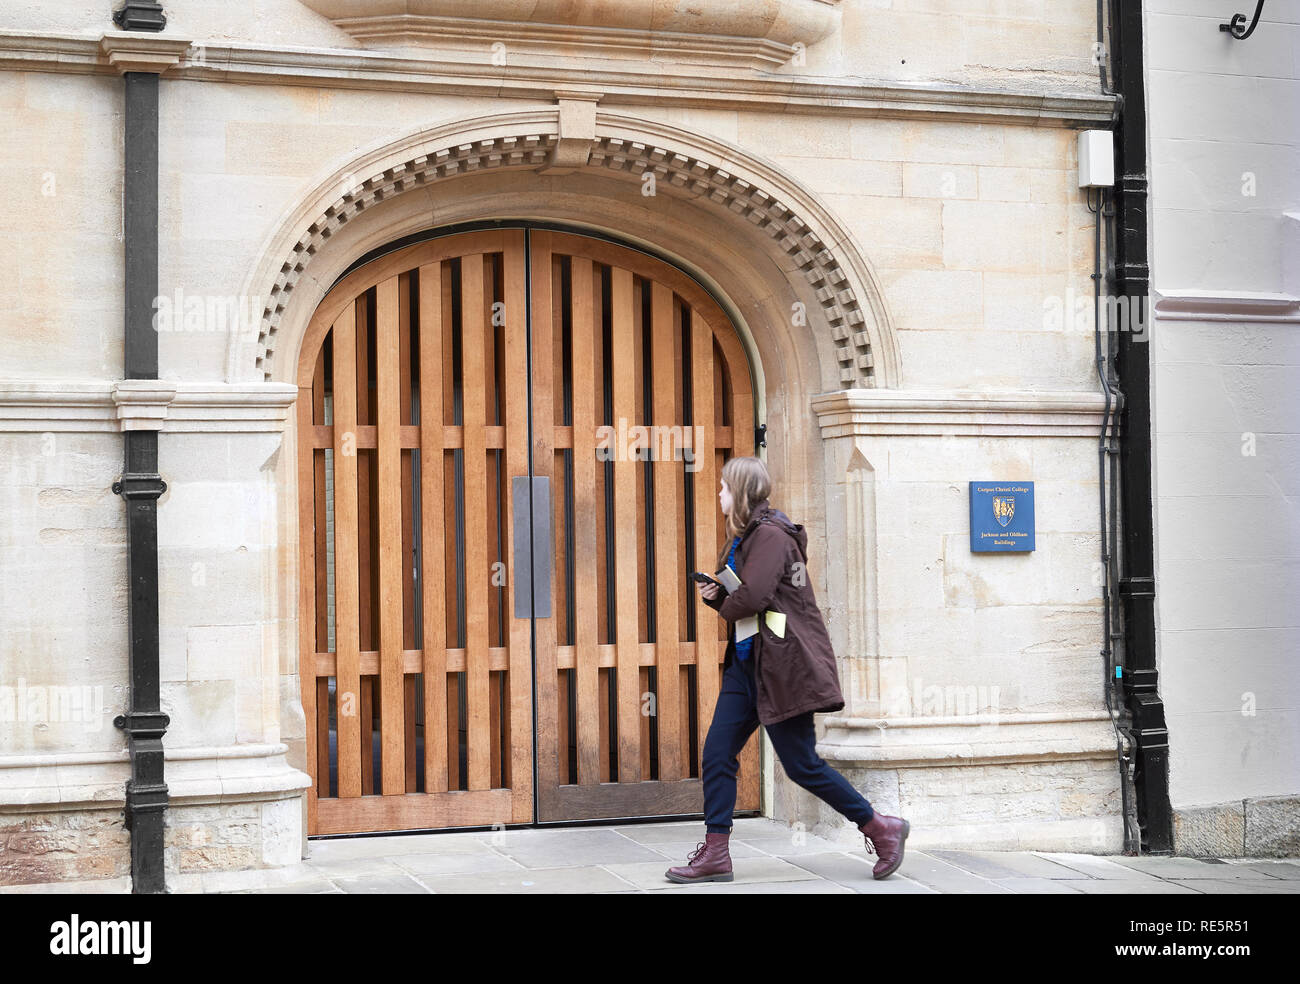 A female student walks pasts the gateway entrance to the Jackson and Oldham buildings of Corpus Christi college, university of Oxford, England. - Stock Image